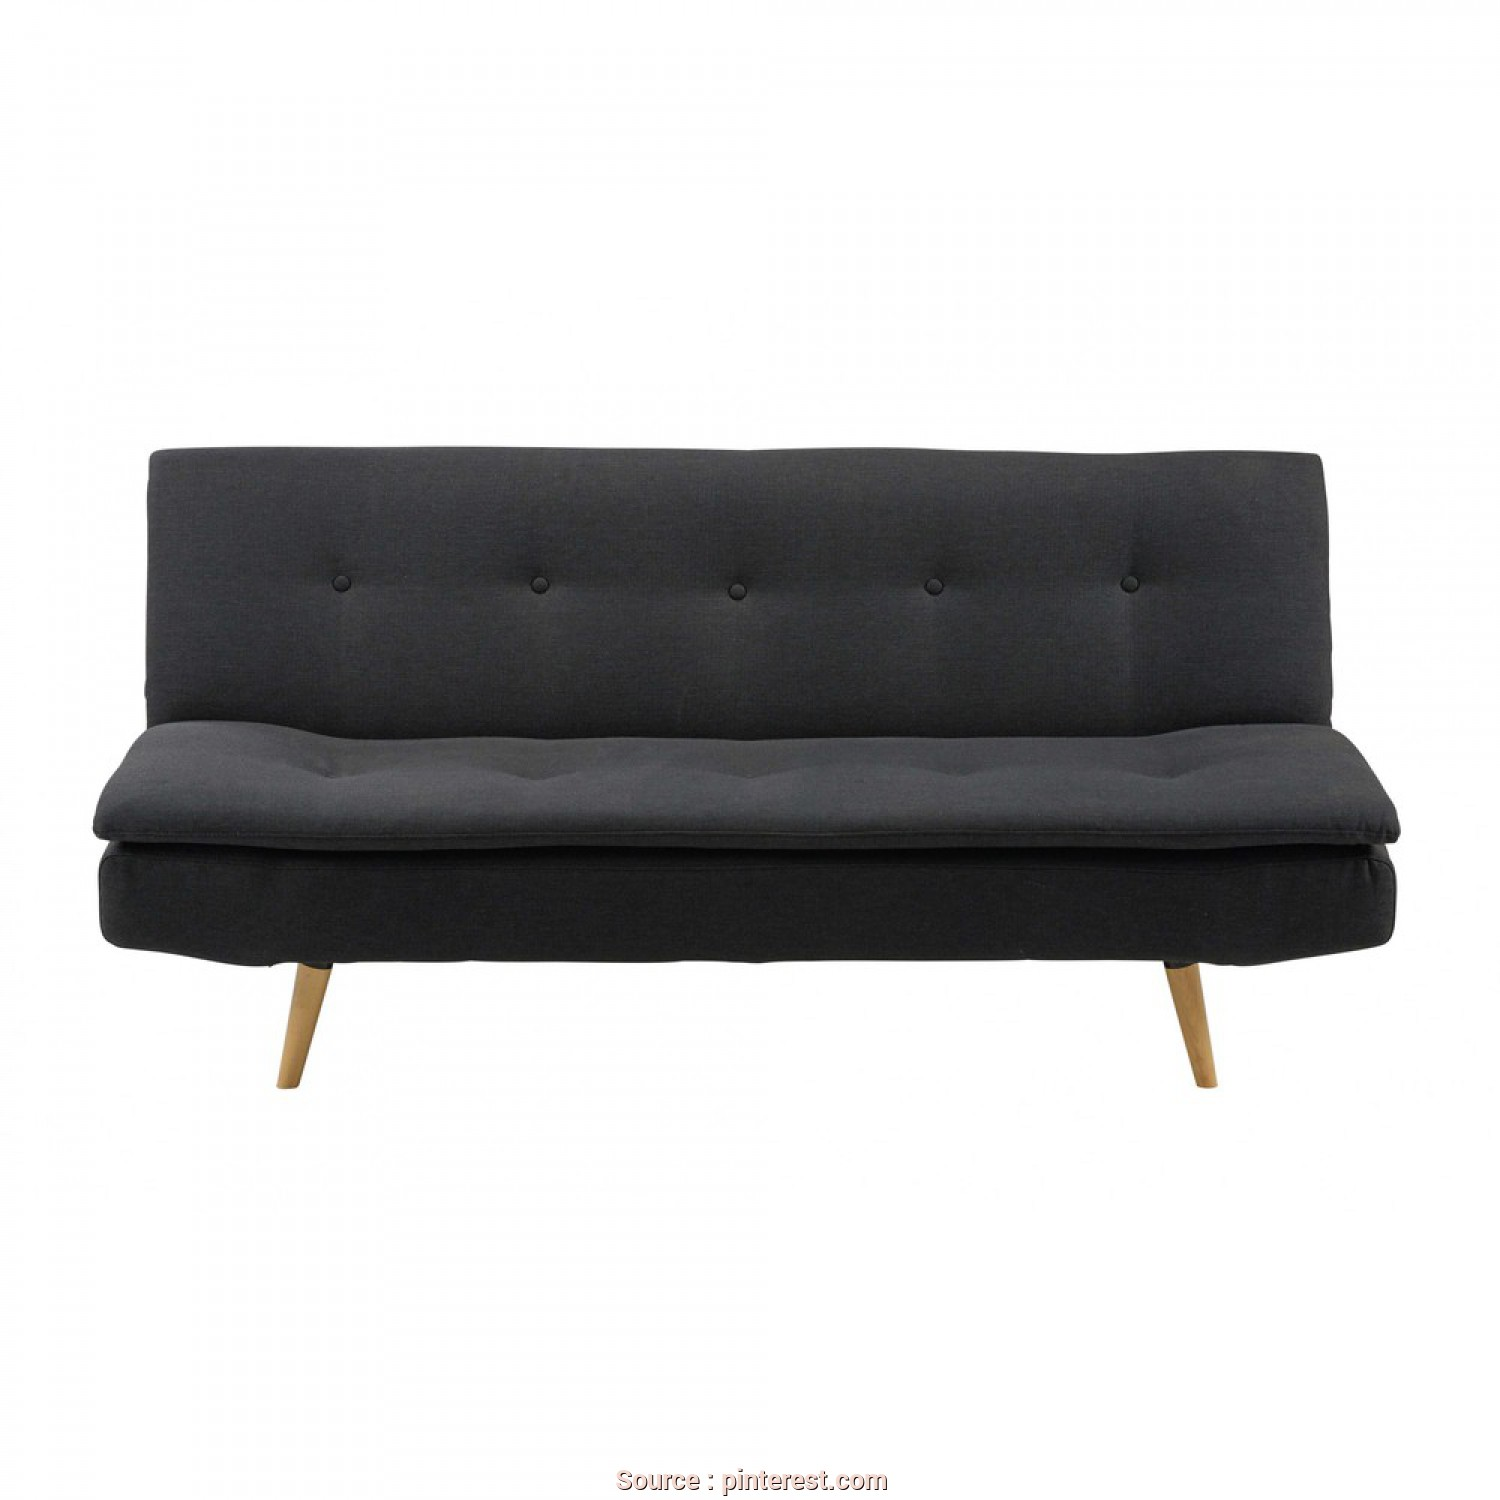 Divano Chesterfield Maison Du Monde Opinioni, Magnifico Dark Grey Futon Sofa Bed, Anthracite 2/3-Seater Fabric Sleeper Sofa Dakota, Maisons Du Monde